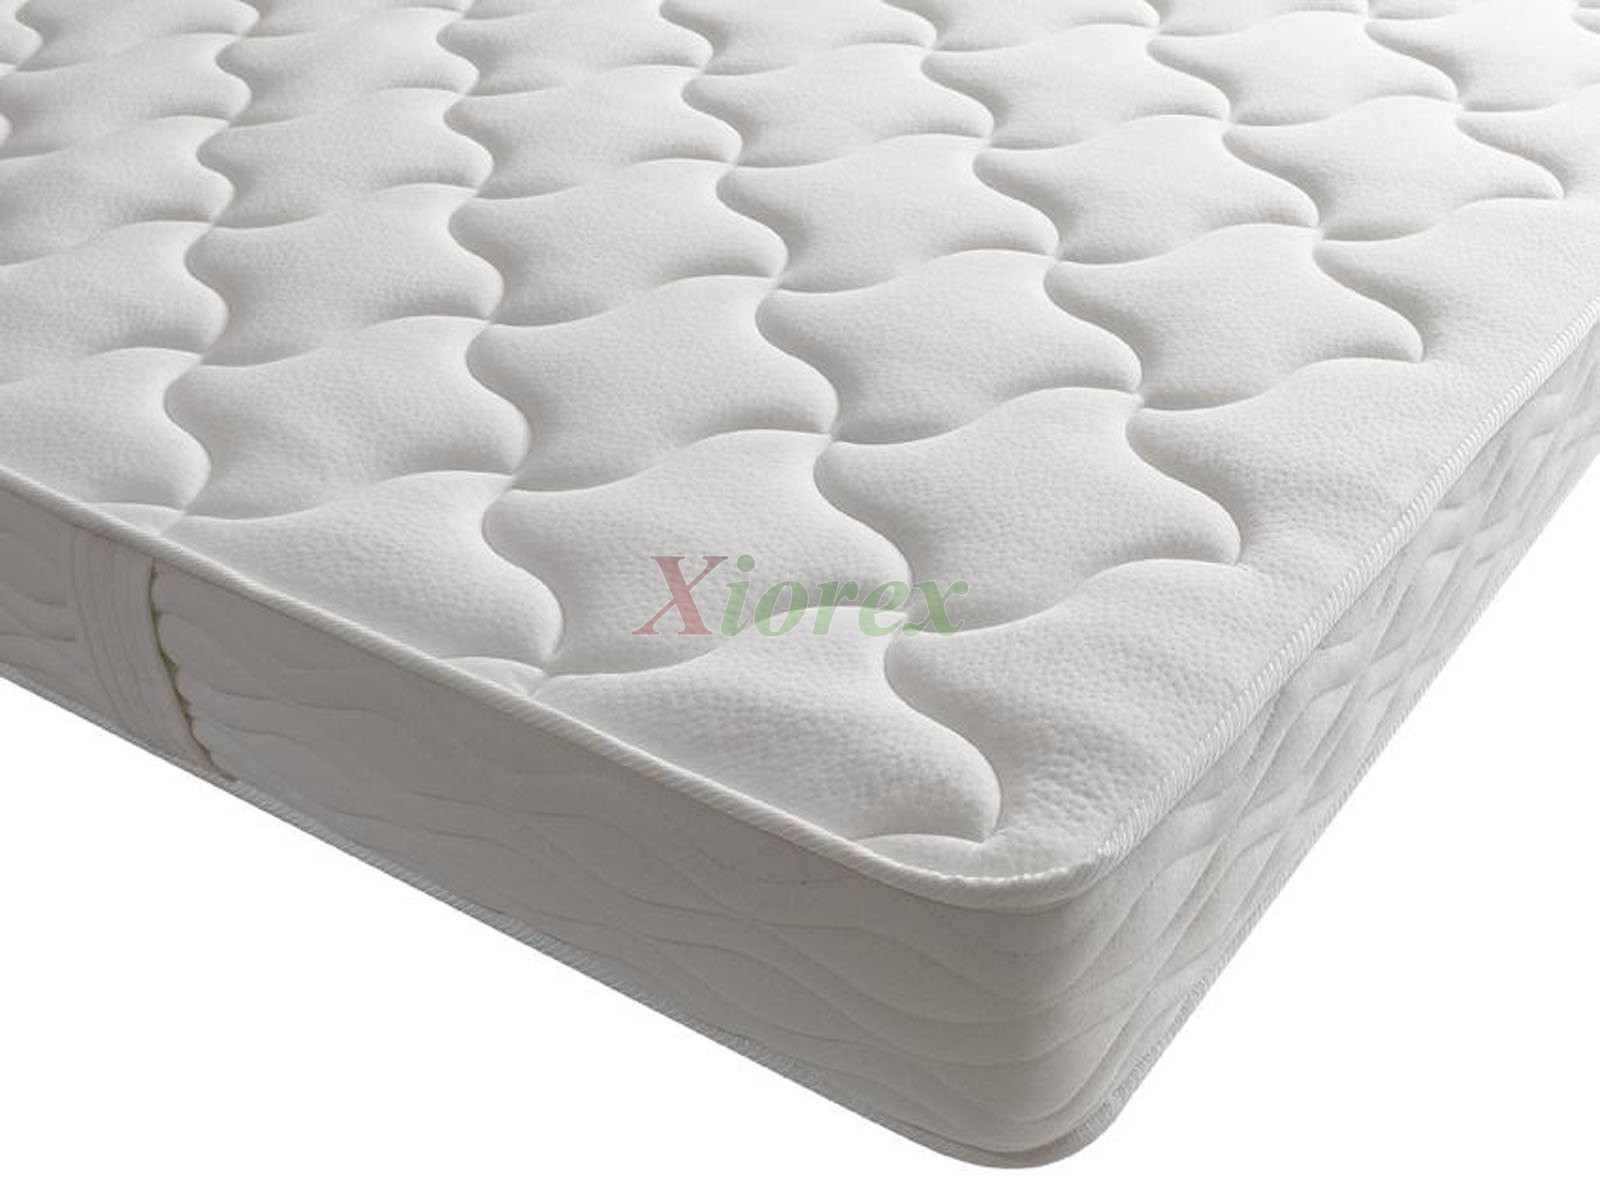 Orion Foam Mattress fortable Foam Mattress by Gautier